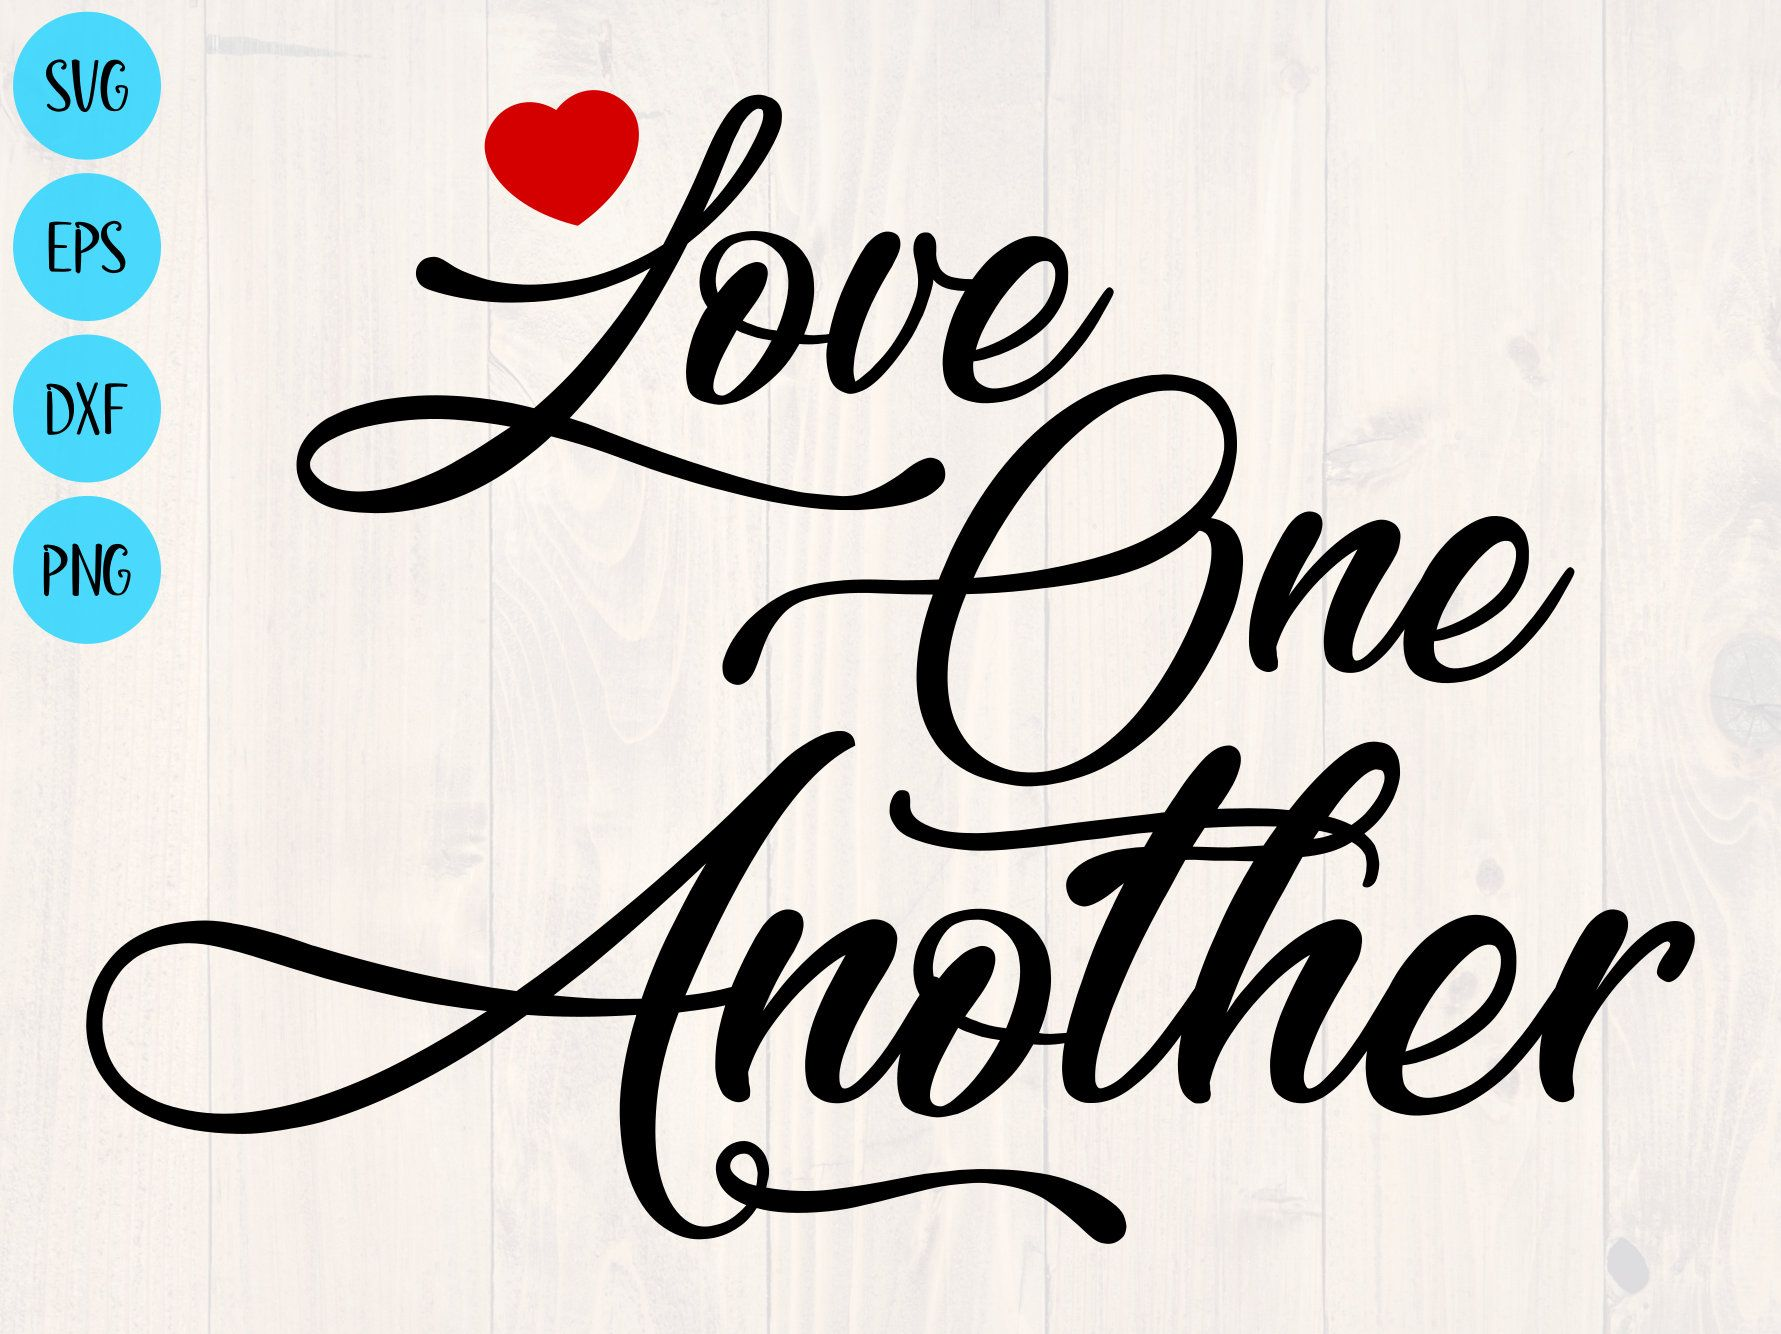 Download Love one another svg, png, eps, and dxf printable wall art ...